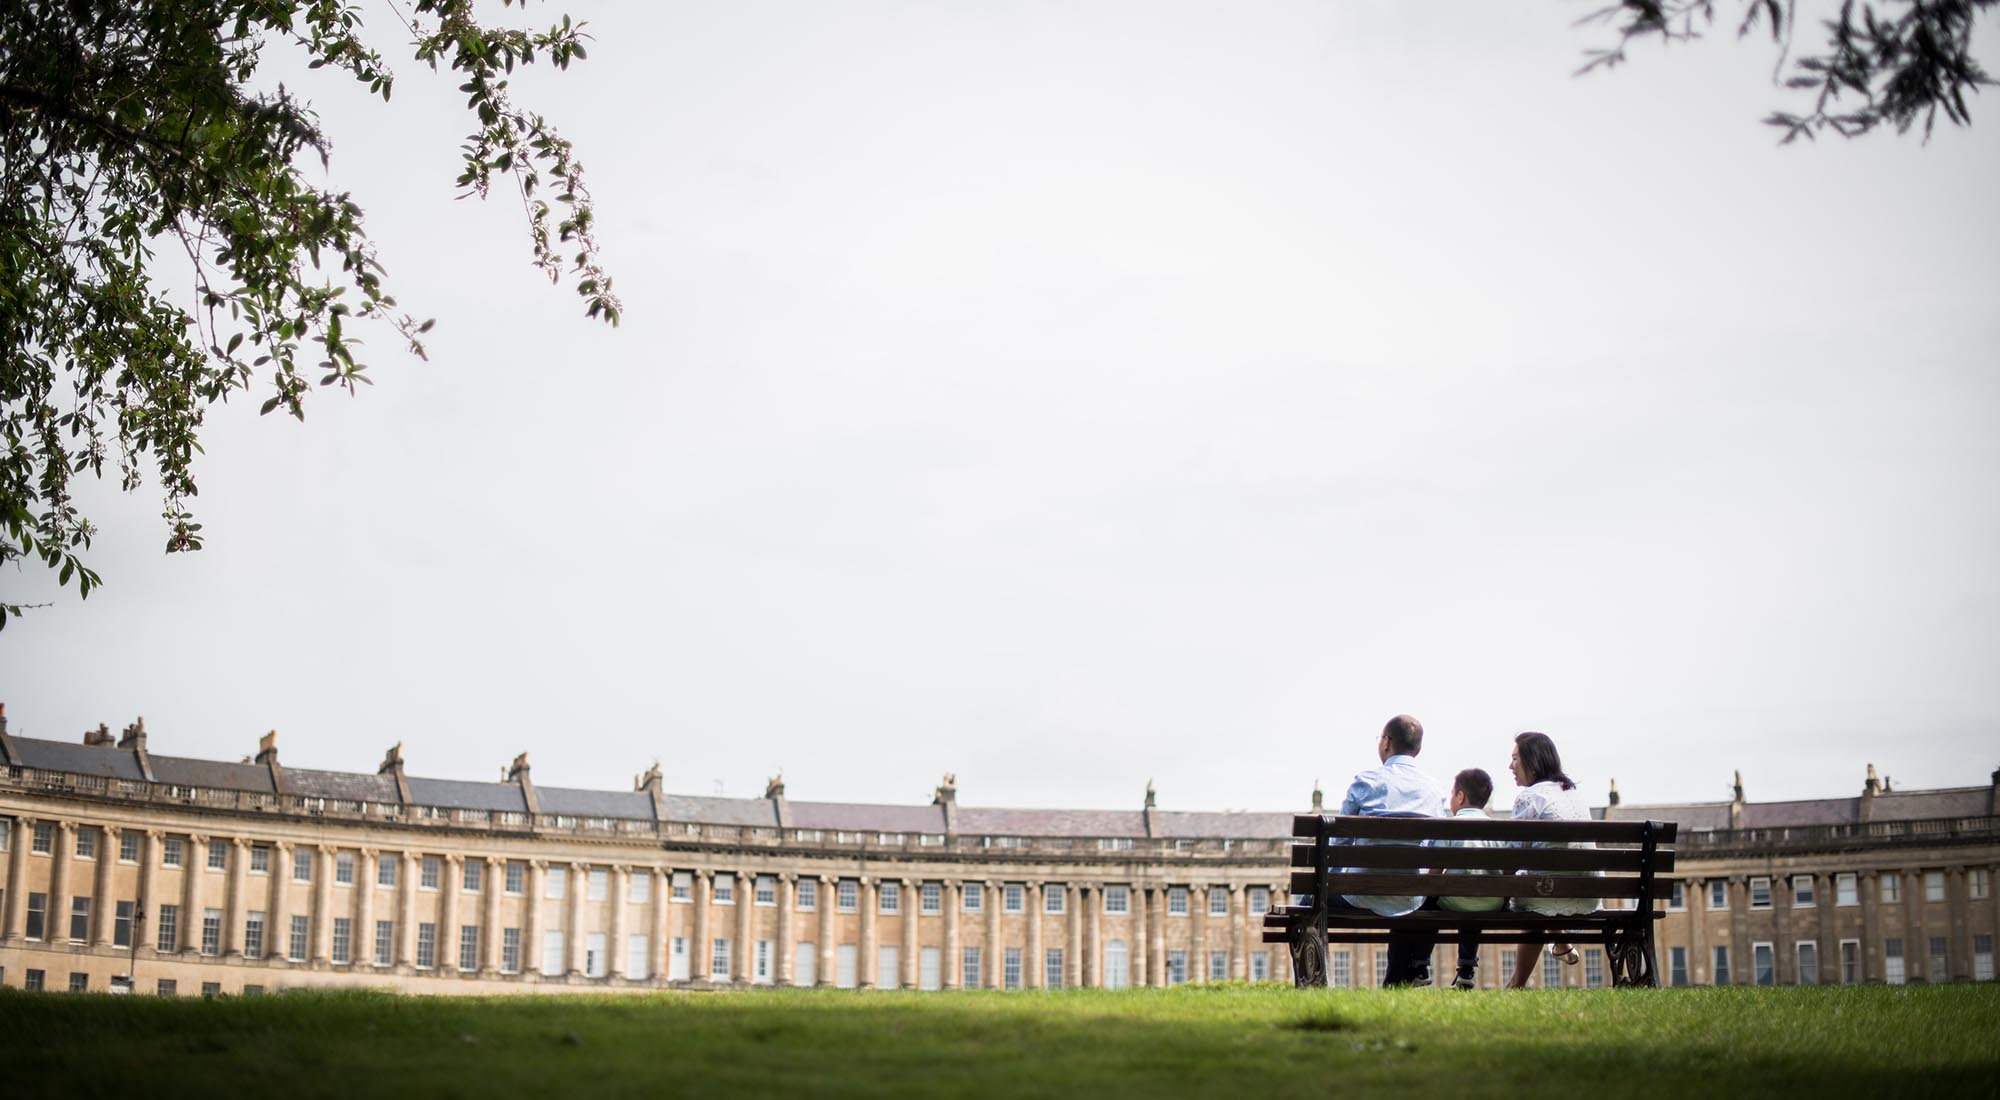 Bath Family Photoshoot at the Royal Crescent